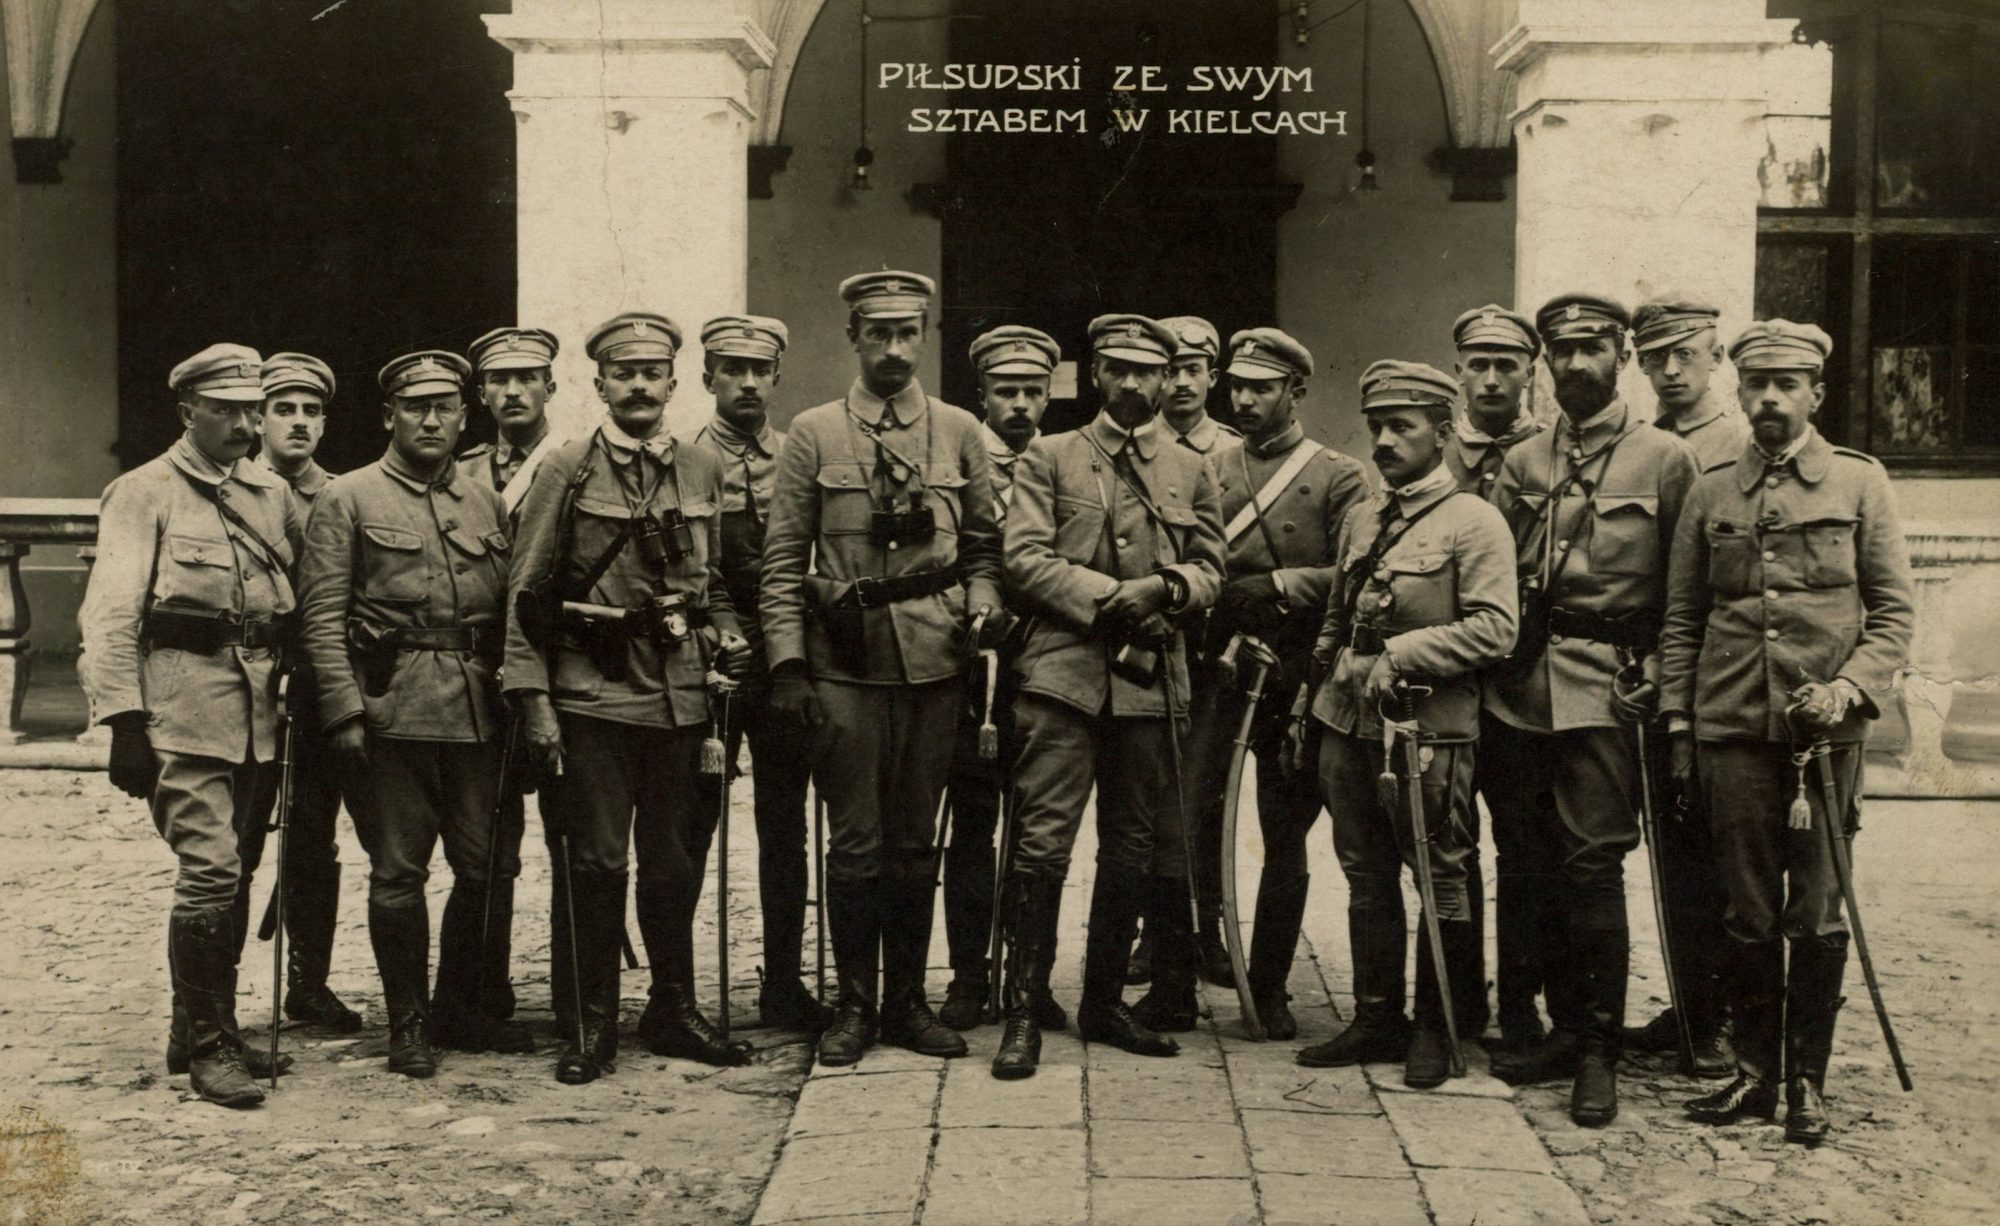 Col. Józef Piłsudski with his staff in front of the Governor's Palace in Kielce, 1914